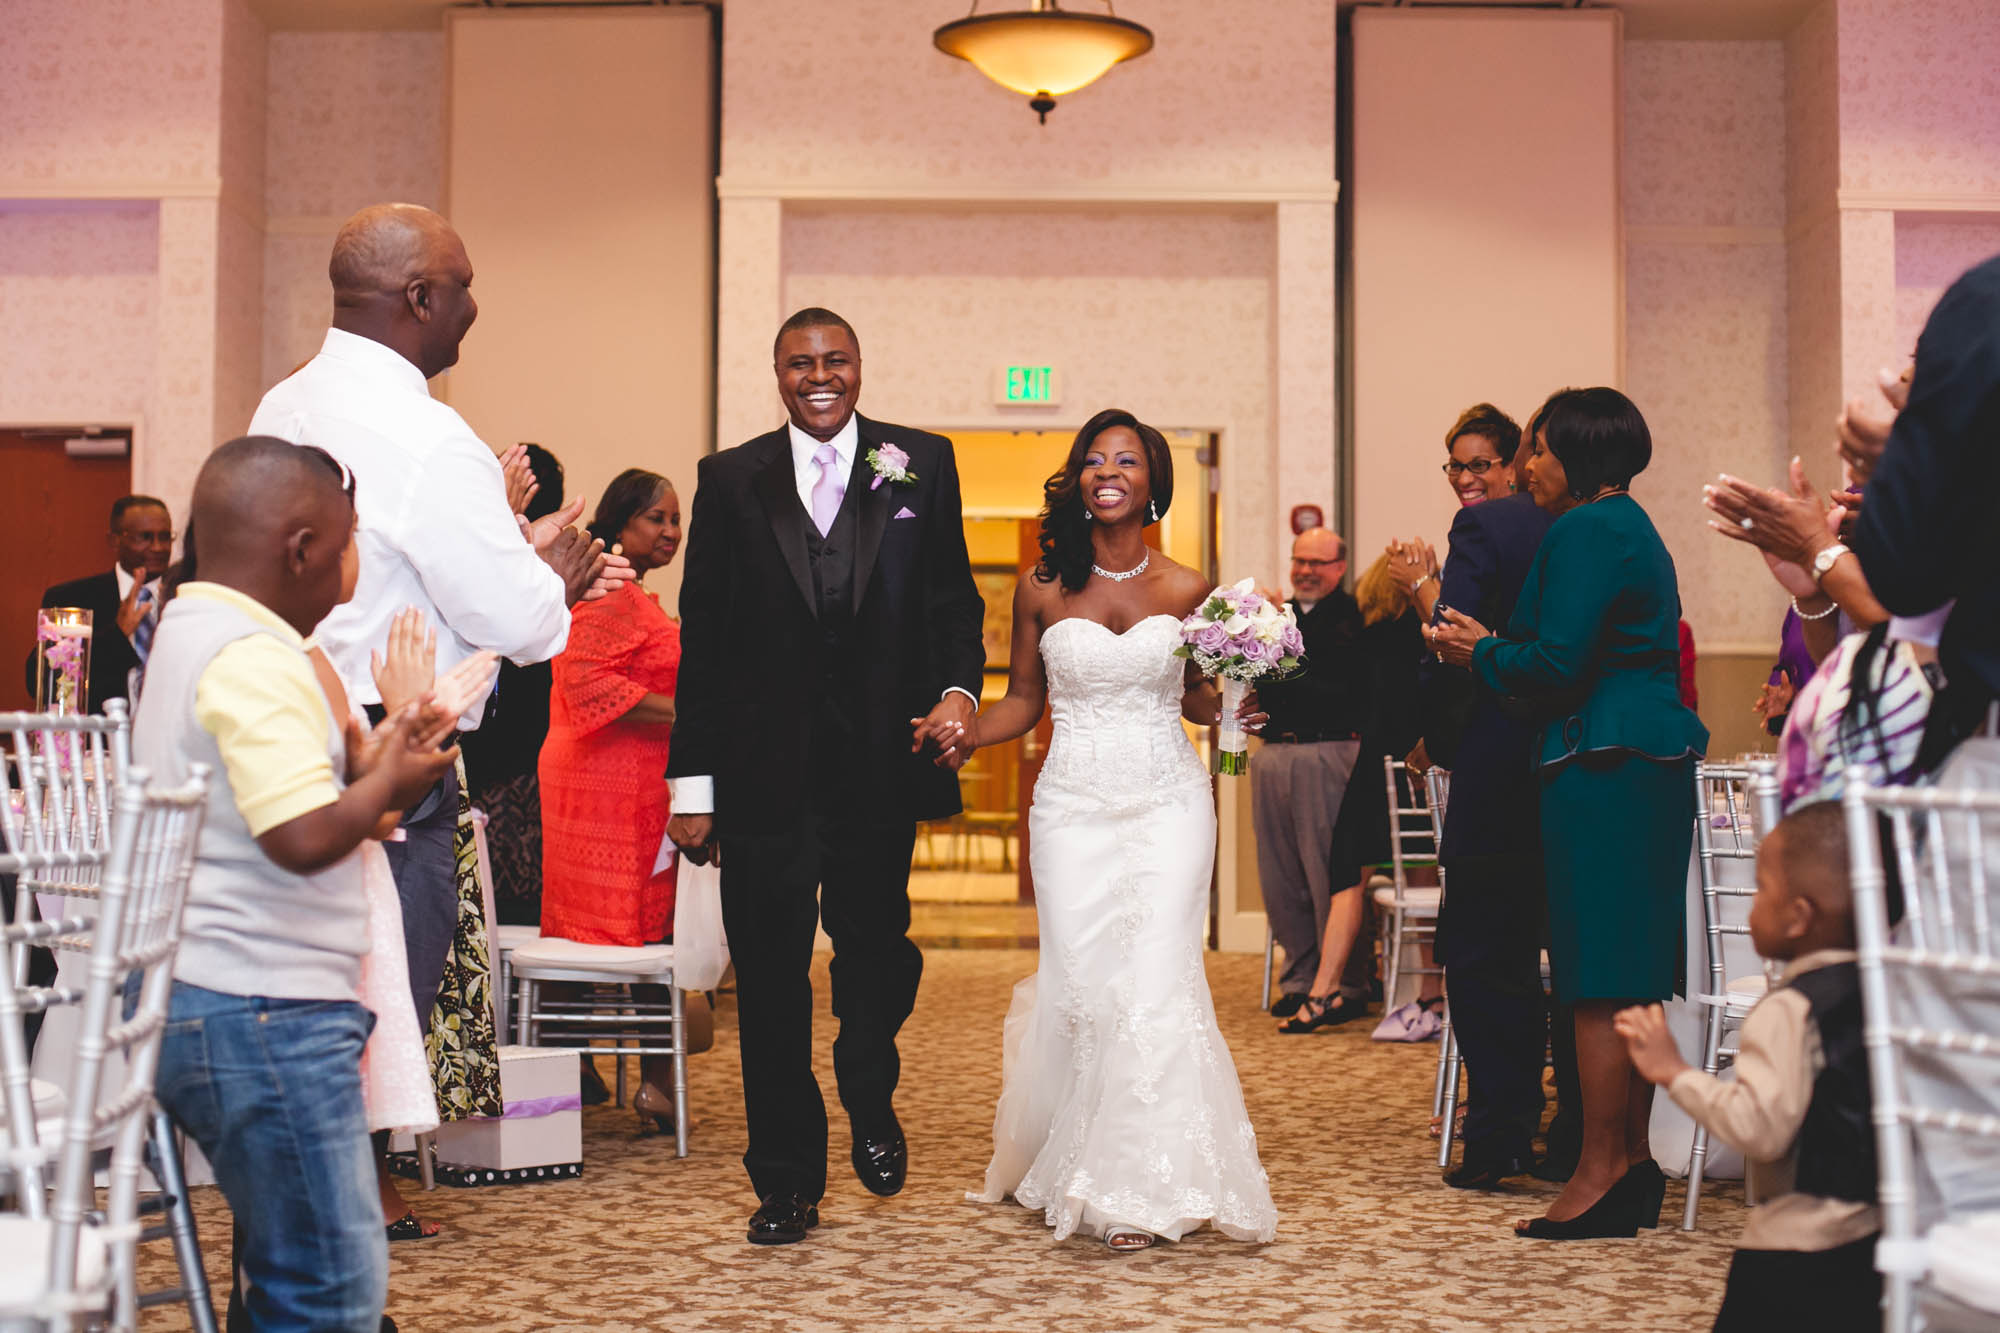 The Williams Wedding Photography at the Lake Mary Event Center by Nathalie P. of EpiphanyImage.com